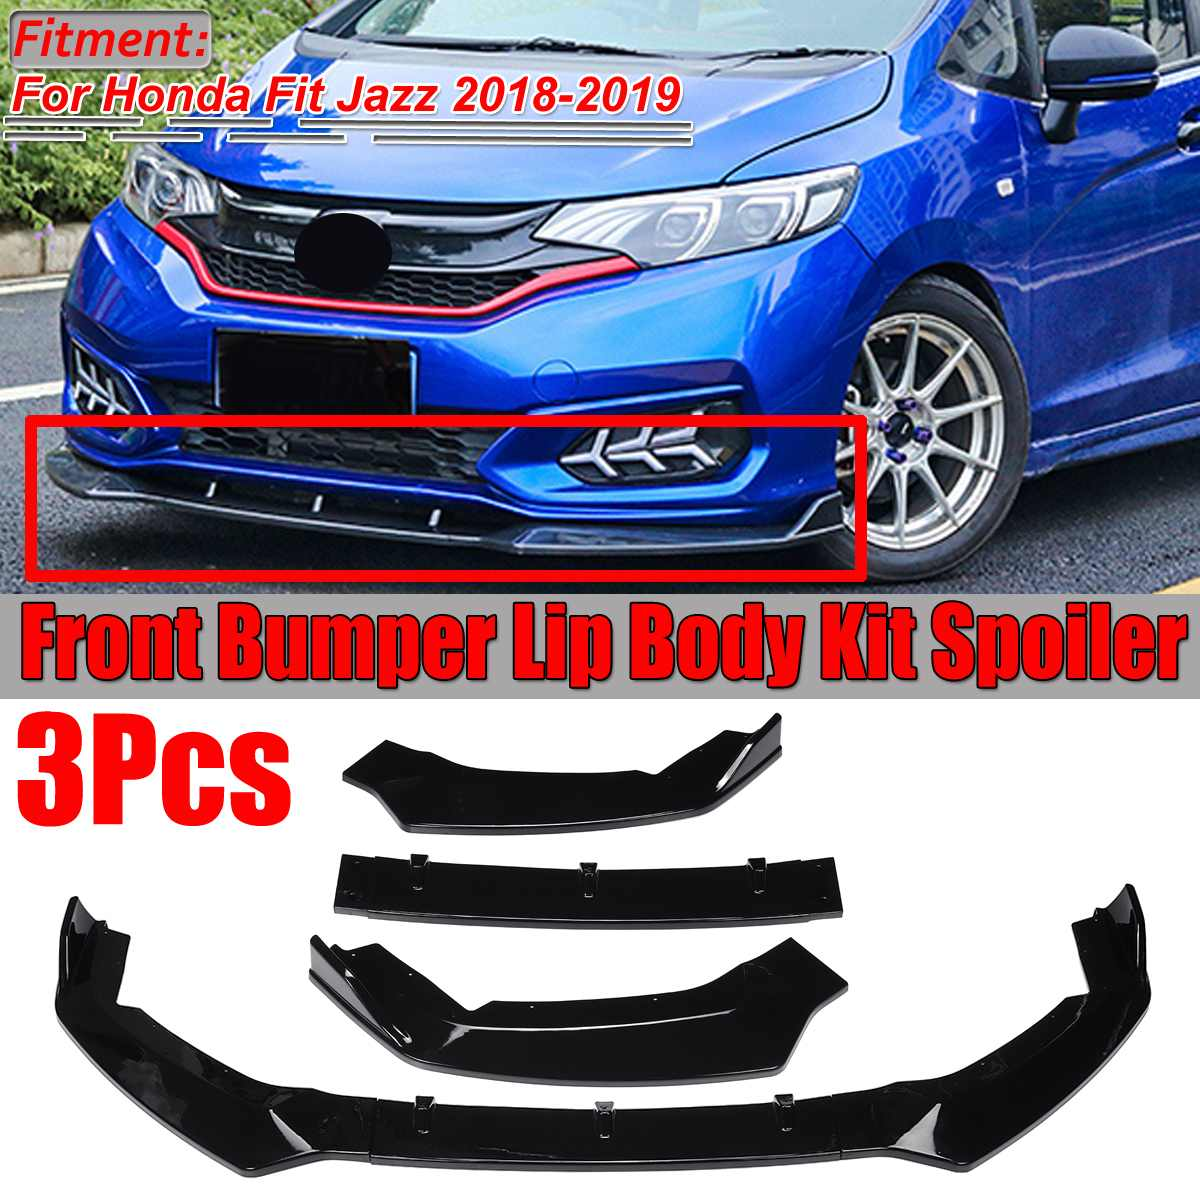 New 3pcs Carbon Fiber Look/Black Car Front Bumper Splitter Lip Body Kit Spoiler Diffuser Guard For Honda Fit For Jazz 2018-2019